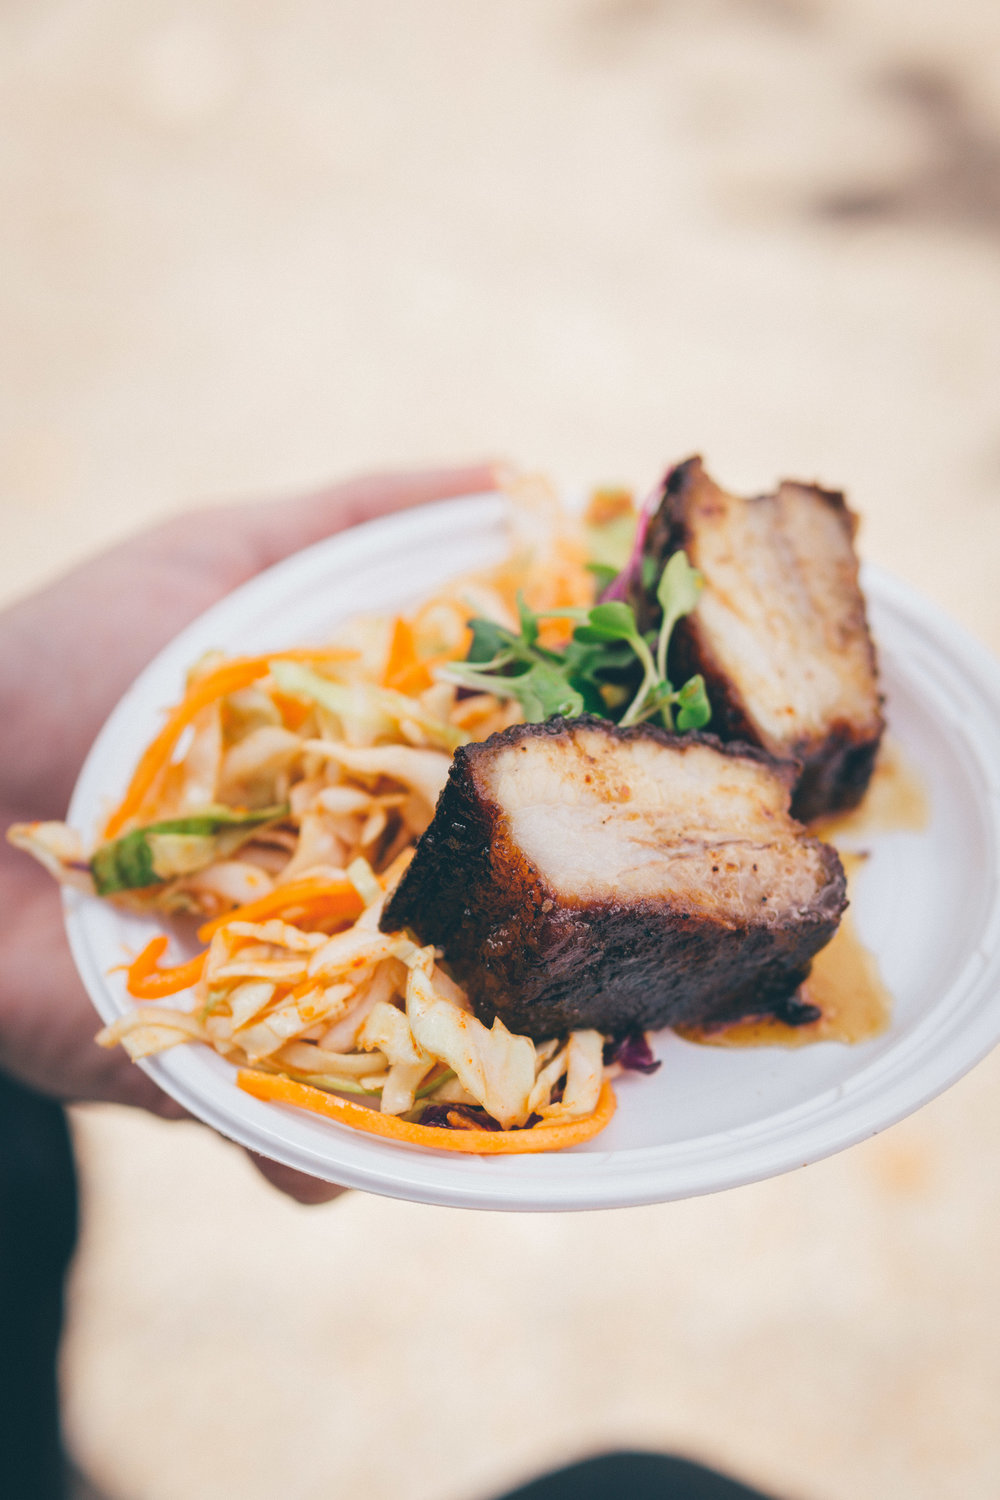 28) Coke Fusion: Minute Maid Apple Glazed Pork Belly with Kimchi Slaw